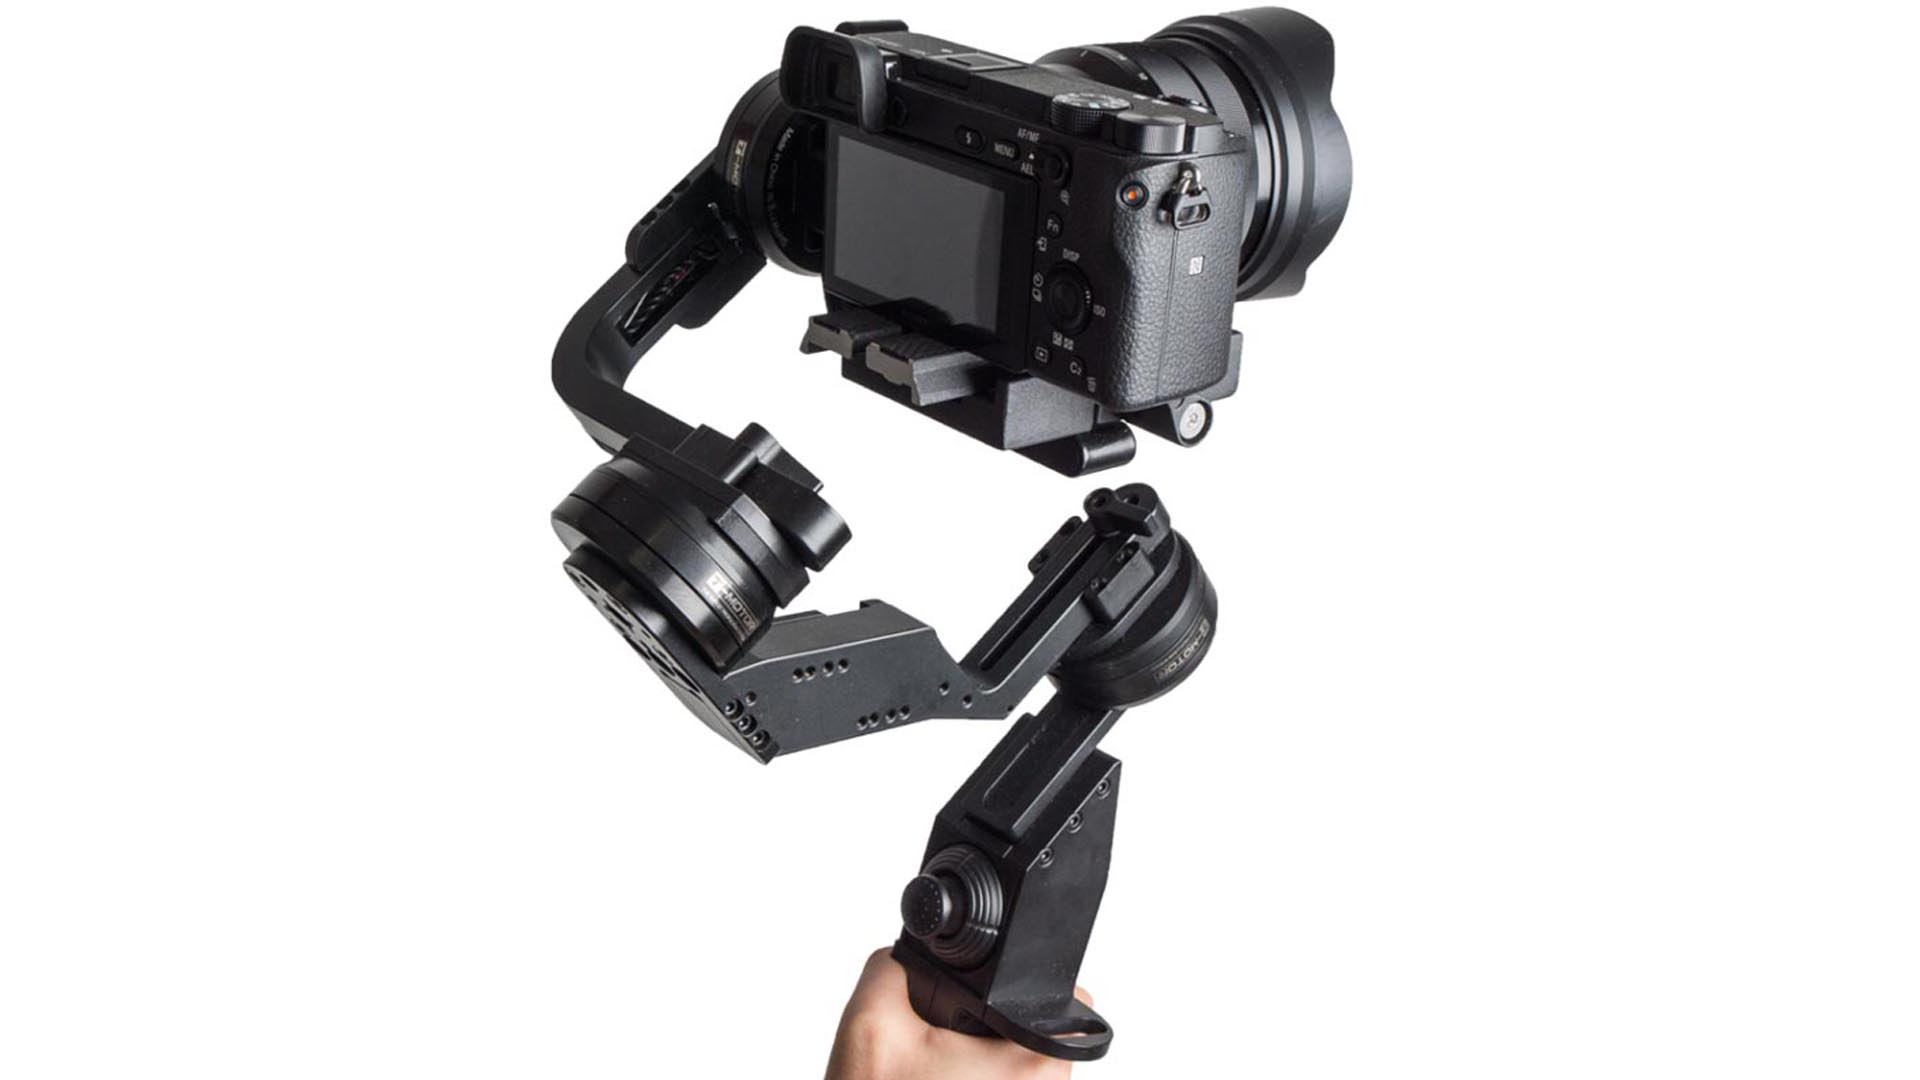 icecam-gimbal tiny 2 vision home